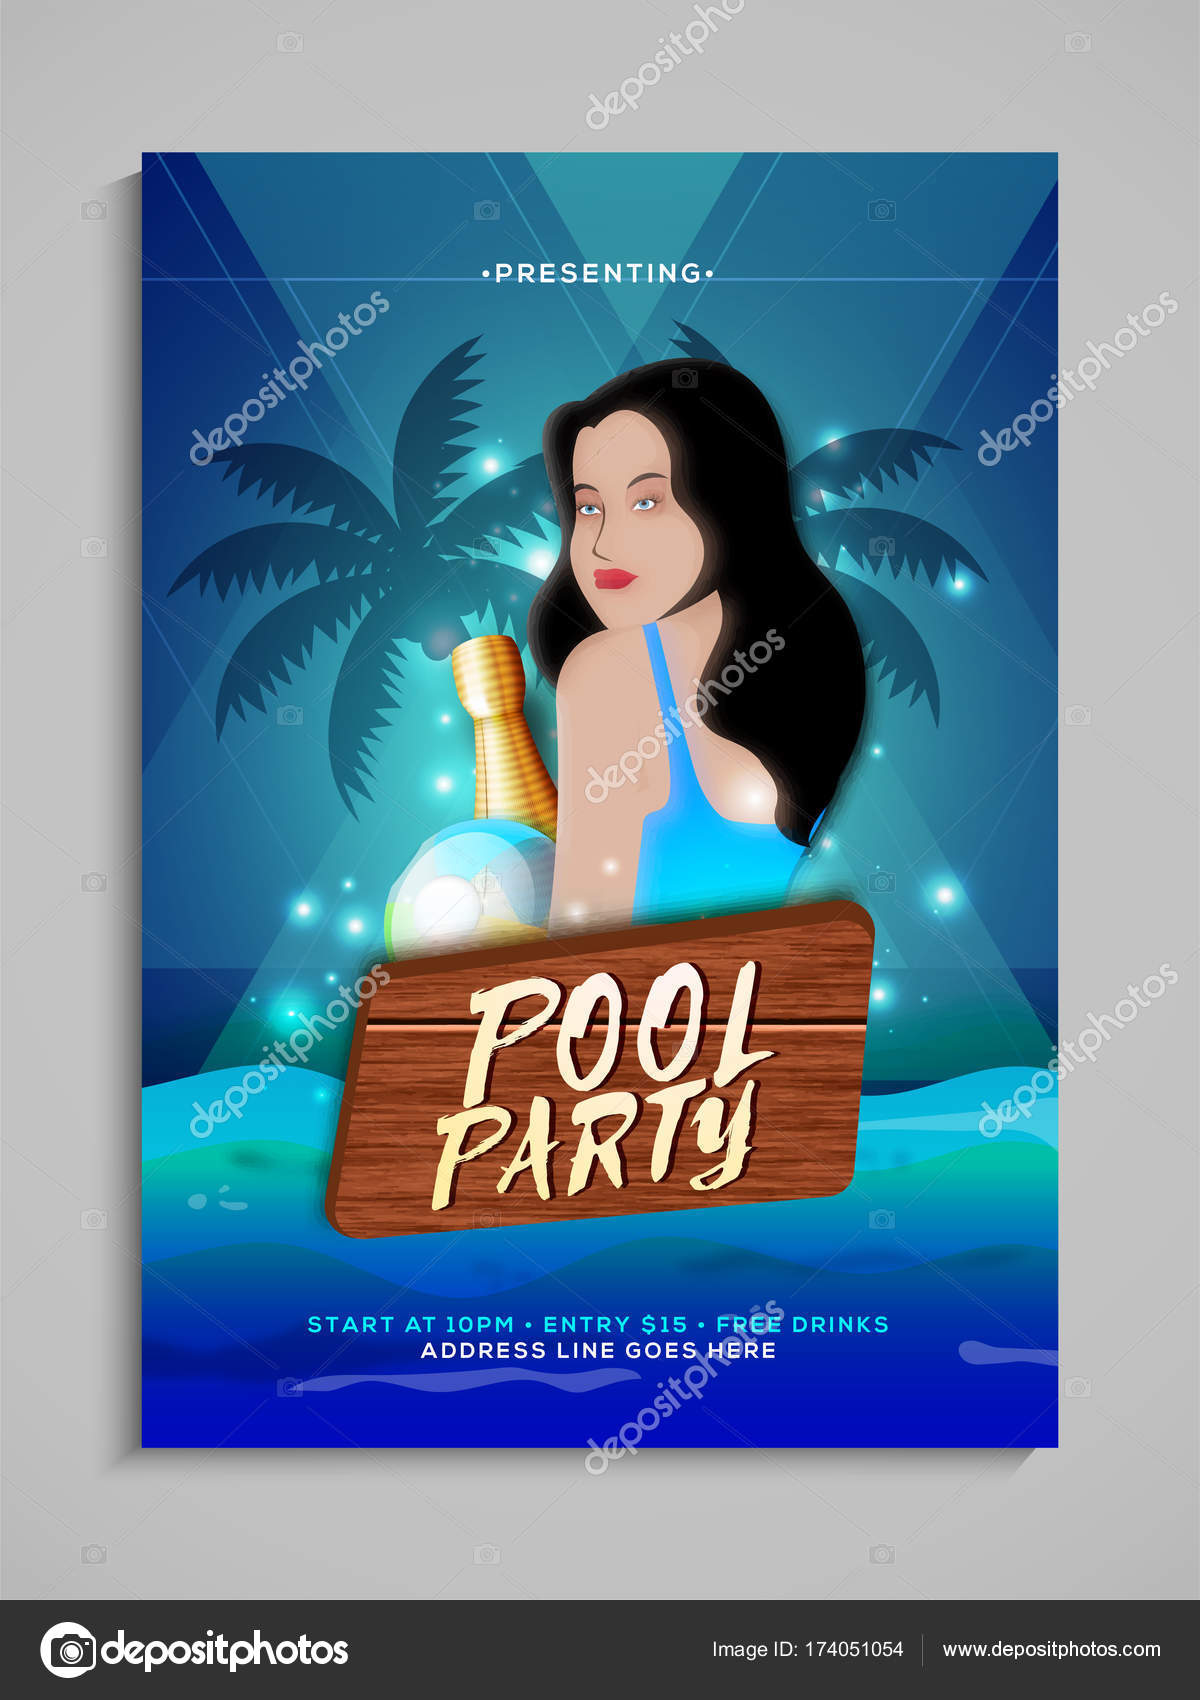 pool party flyer or banner design with young female lady illustr